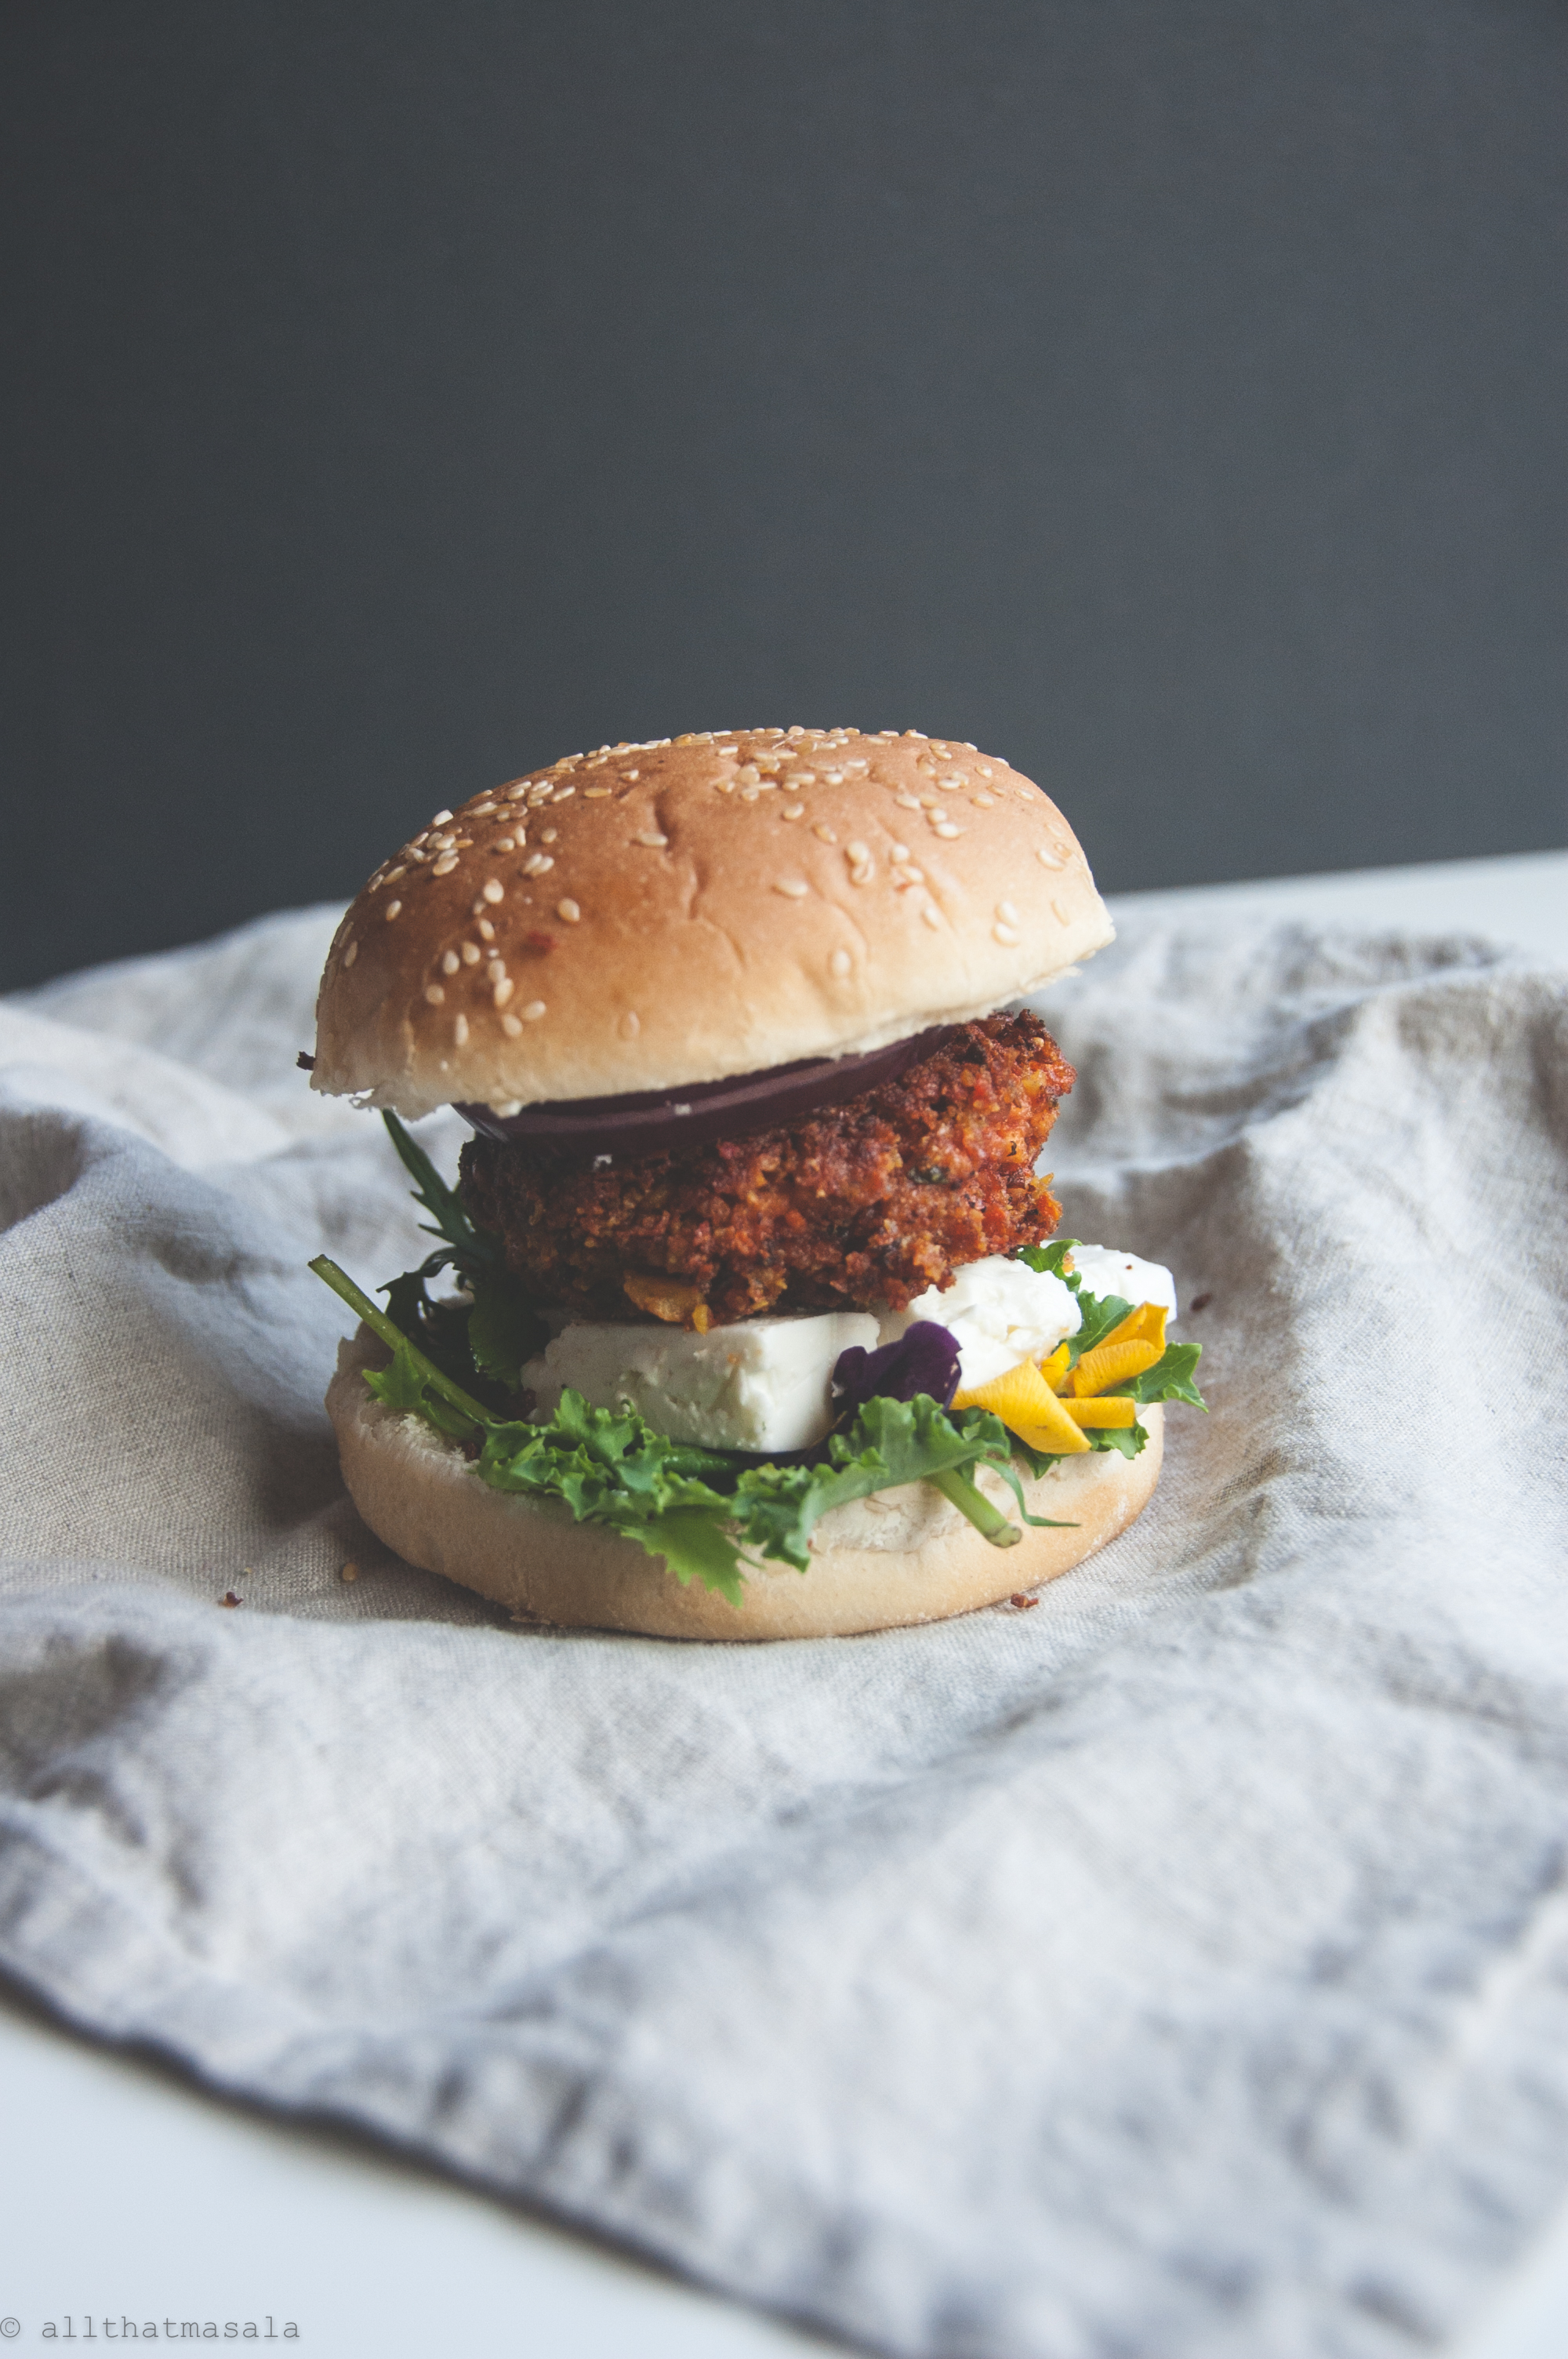 Vegan burger made out of paneer and chickepea, any day better than the meat burger patties!